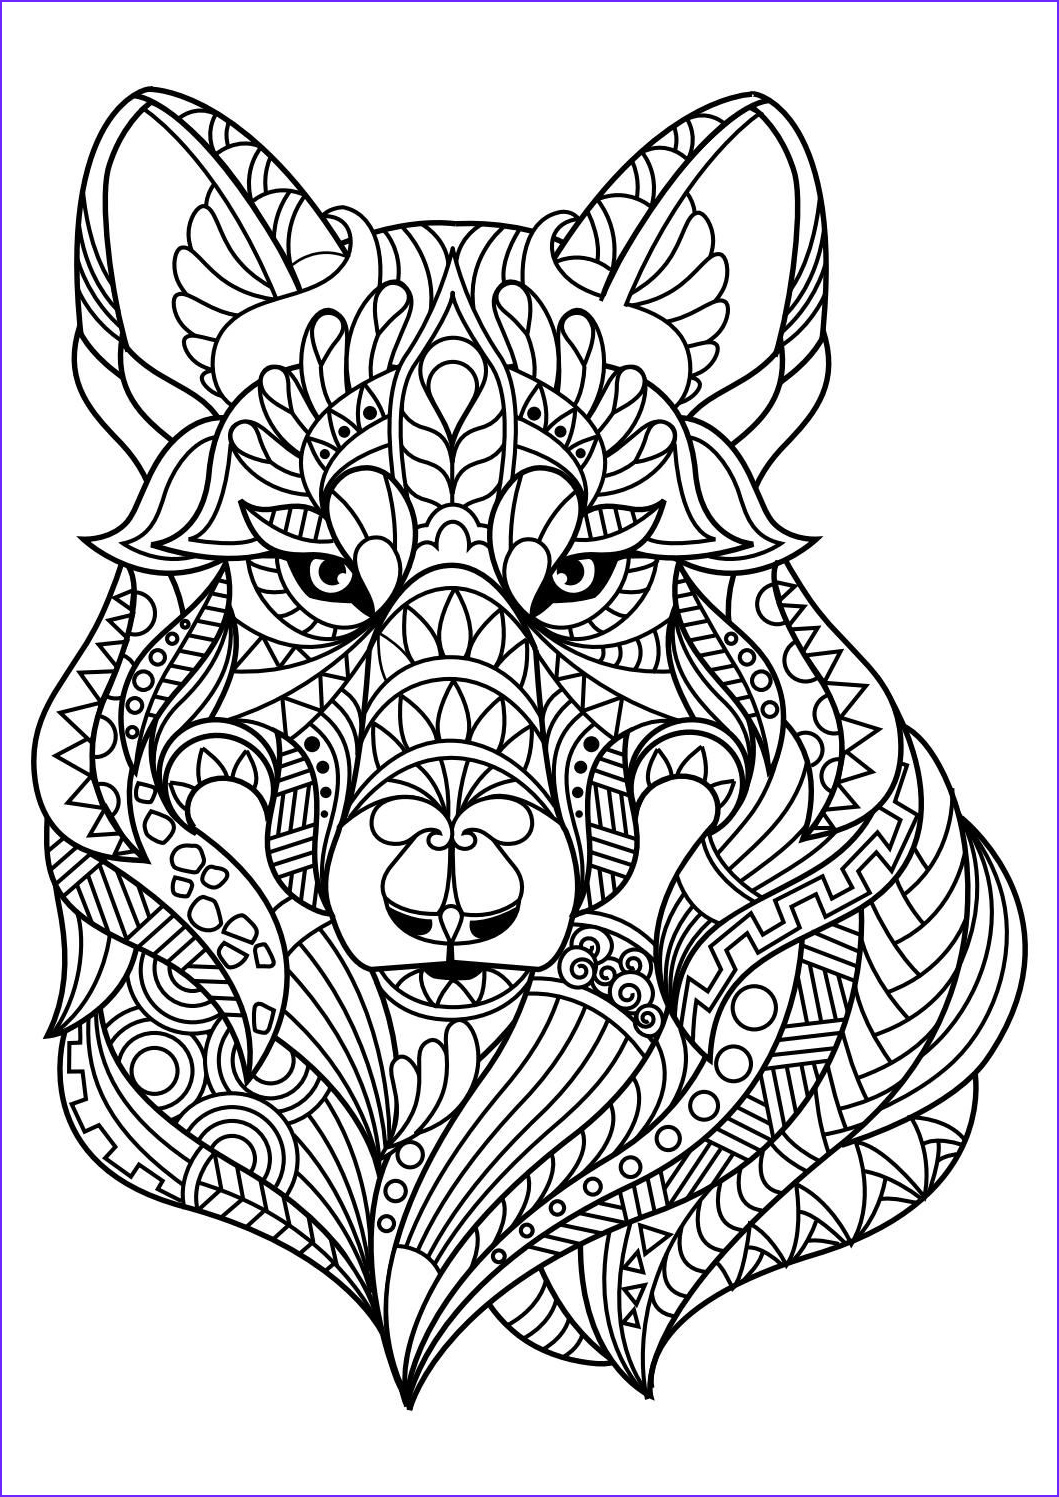 Pdf Coloring Pages Beautiful Stock Animal Coloring Pages Pdf Coloring Animals